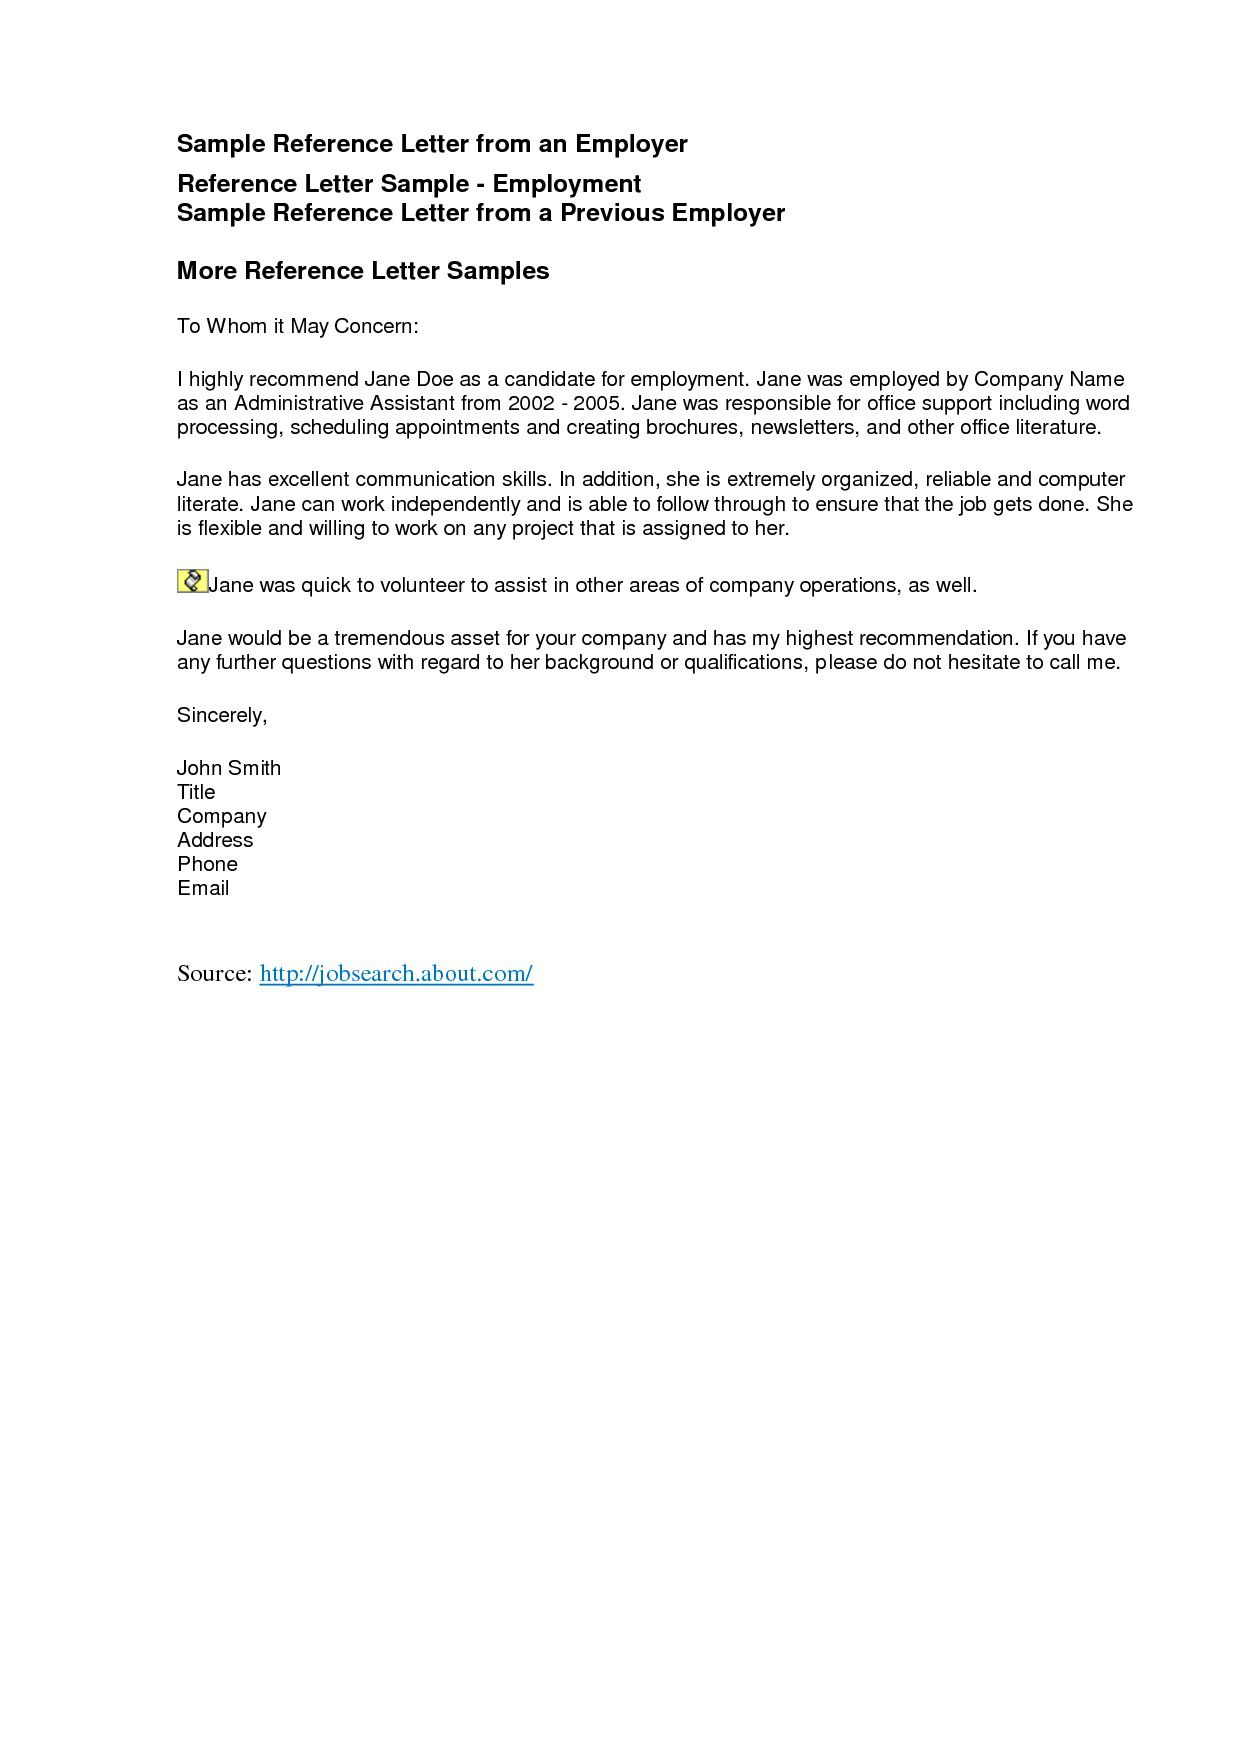 006 Frightening Professional Reference Letter Template Word Highest Quality Full